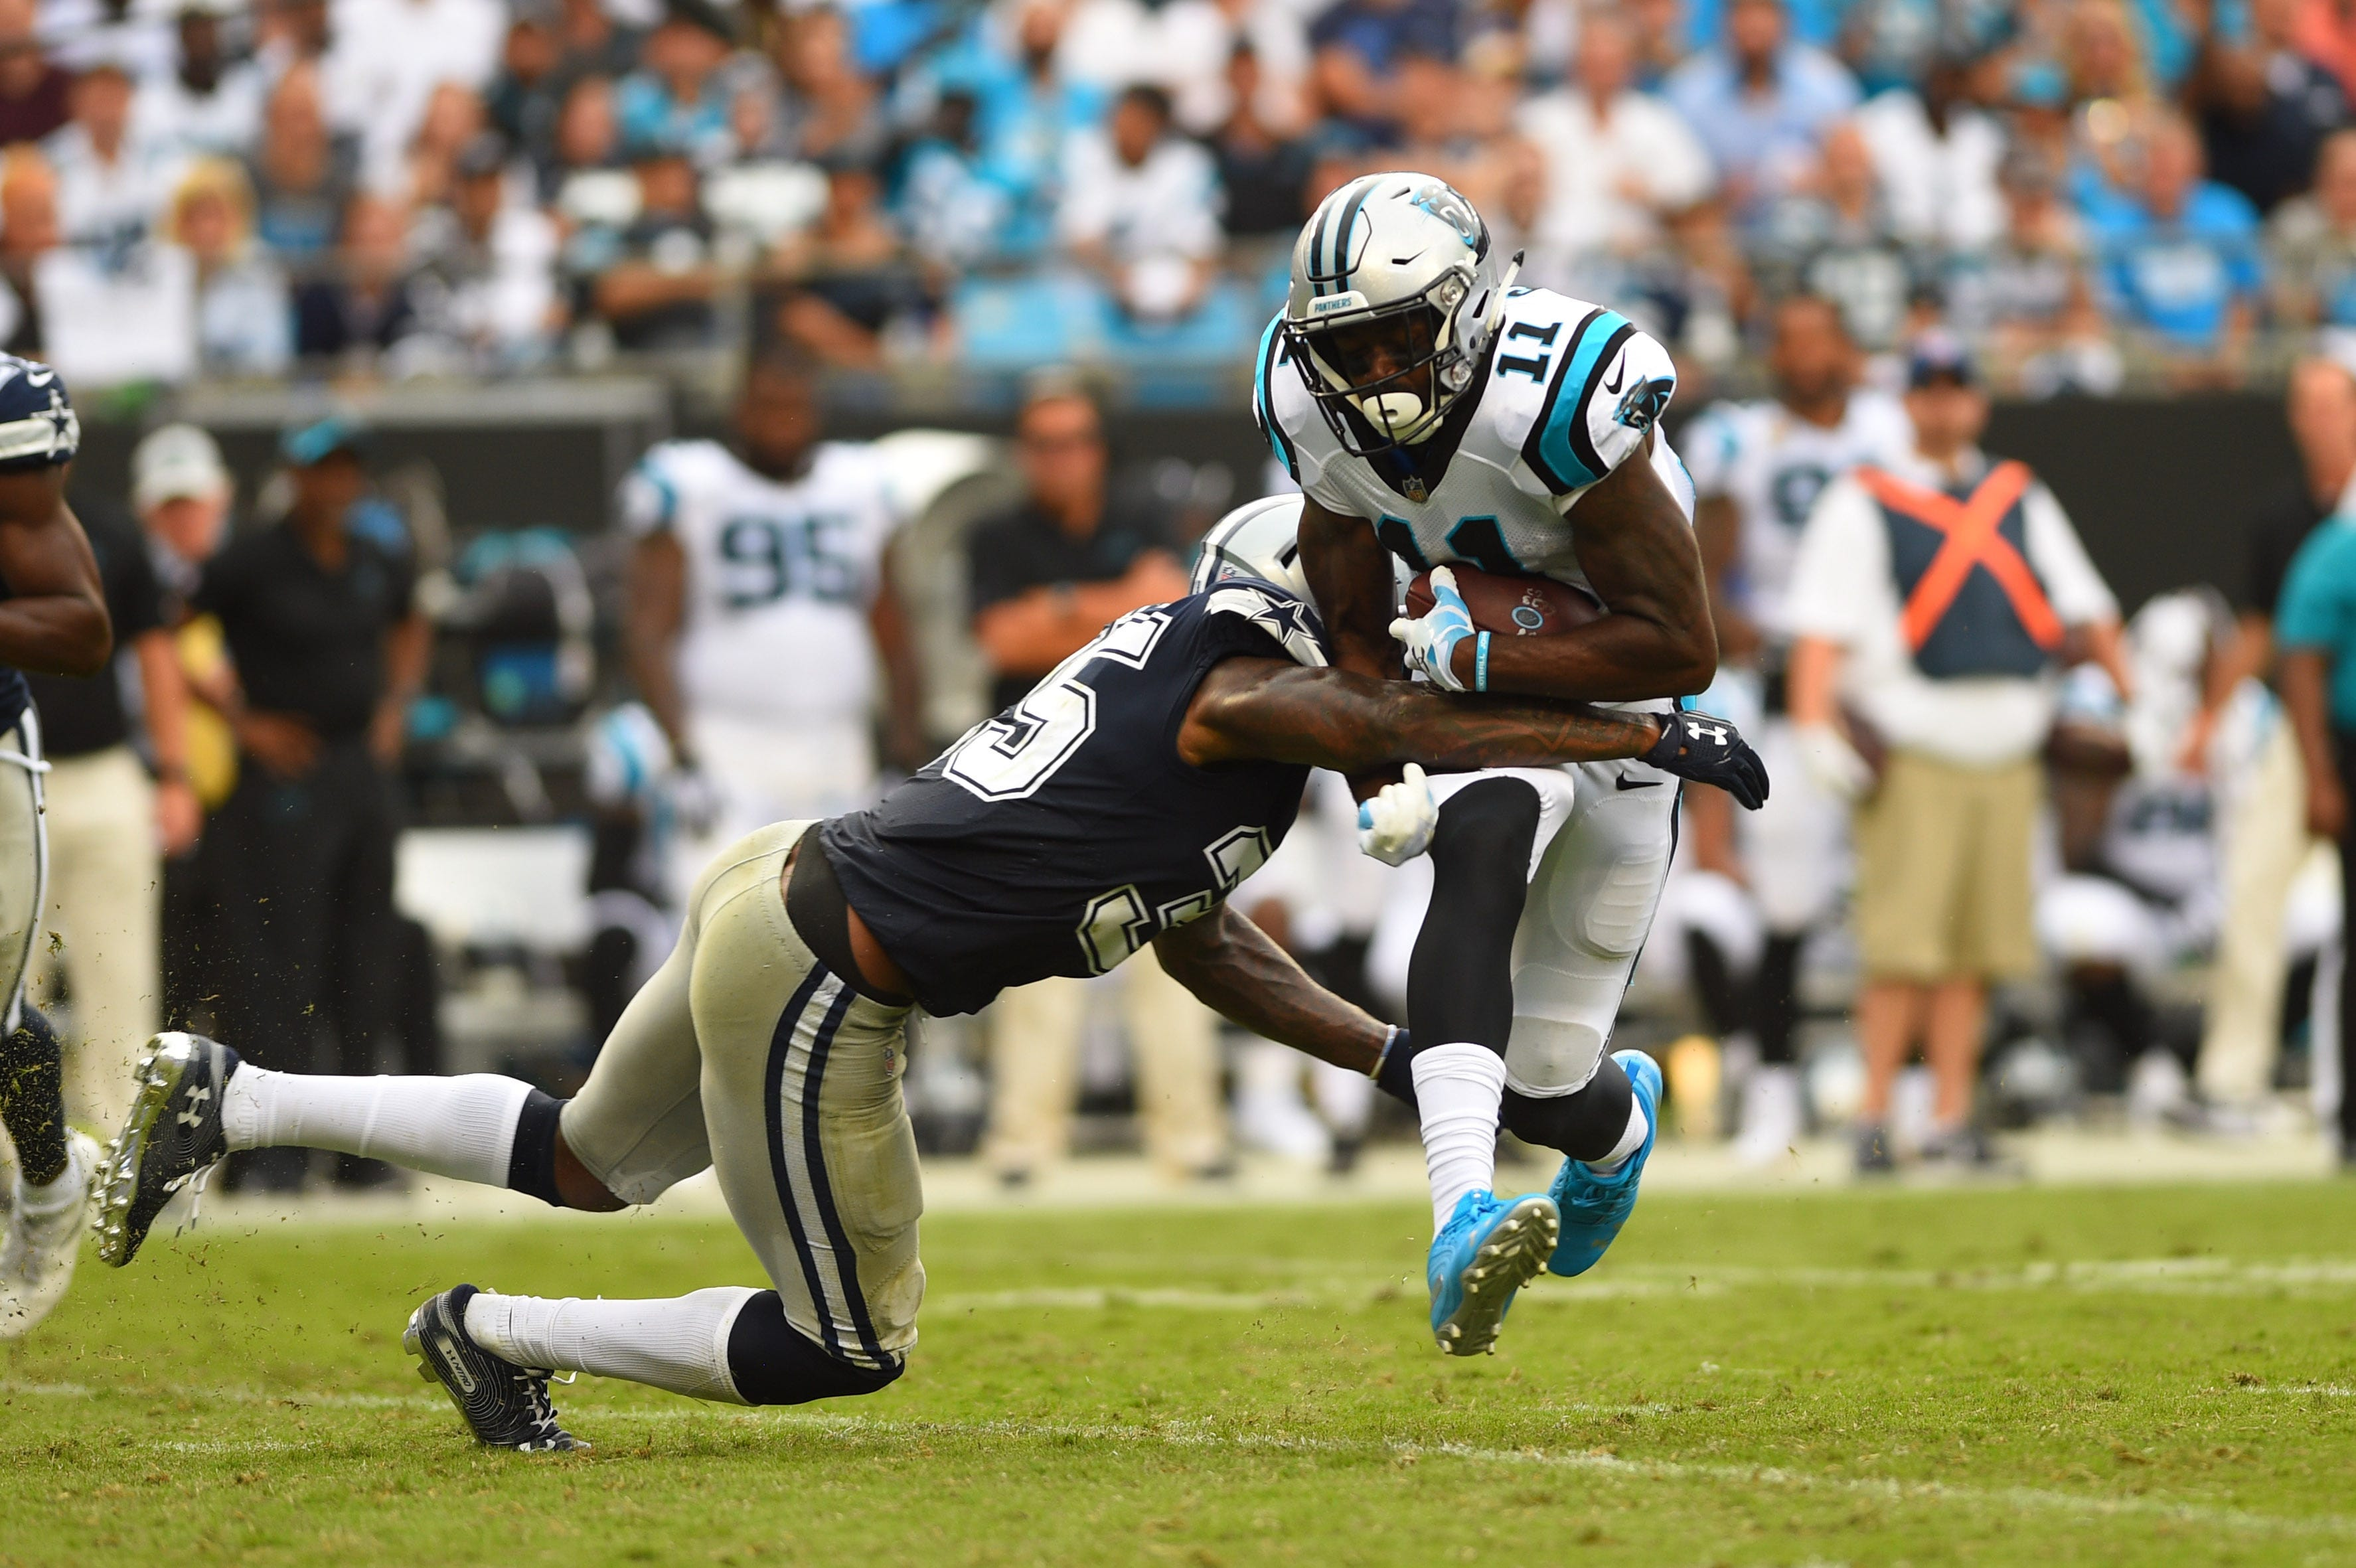 Usp Nfl Dallas Cowboys Carolina Panthers Cbs Fox Ratings Gains Week